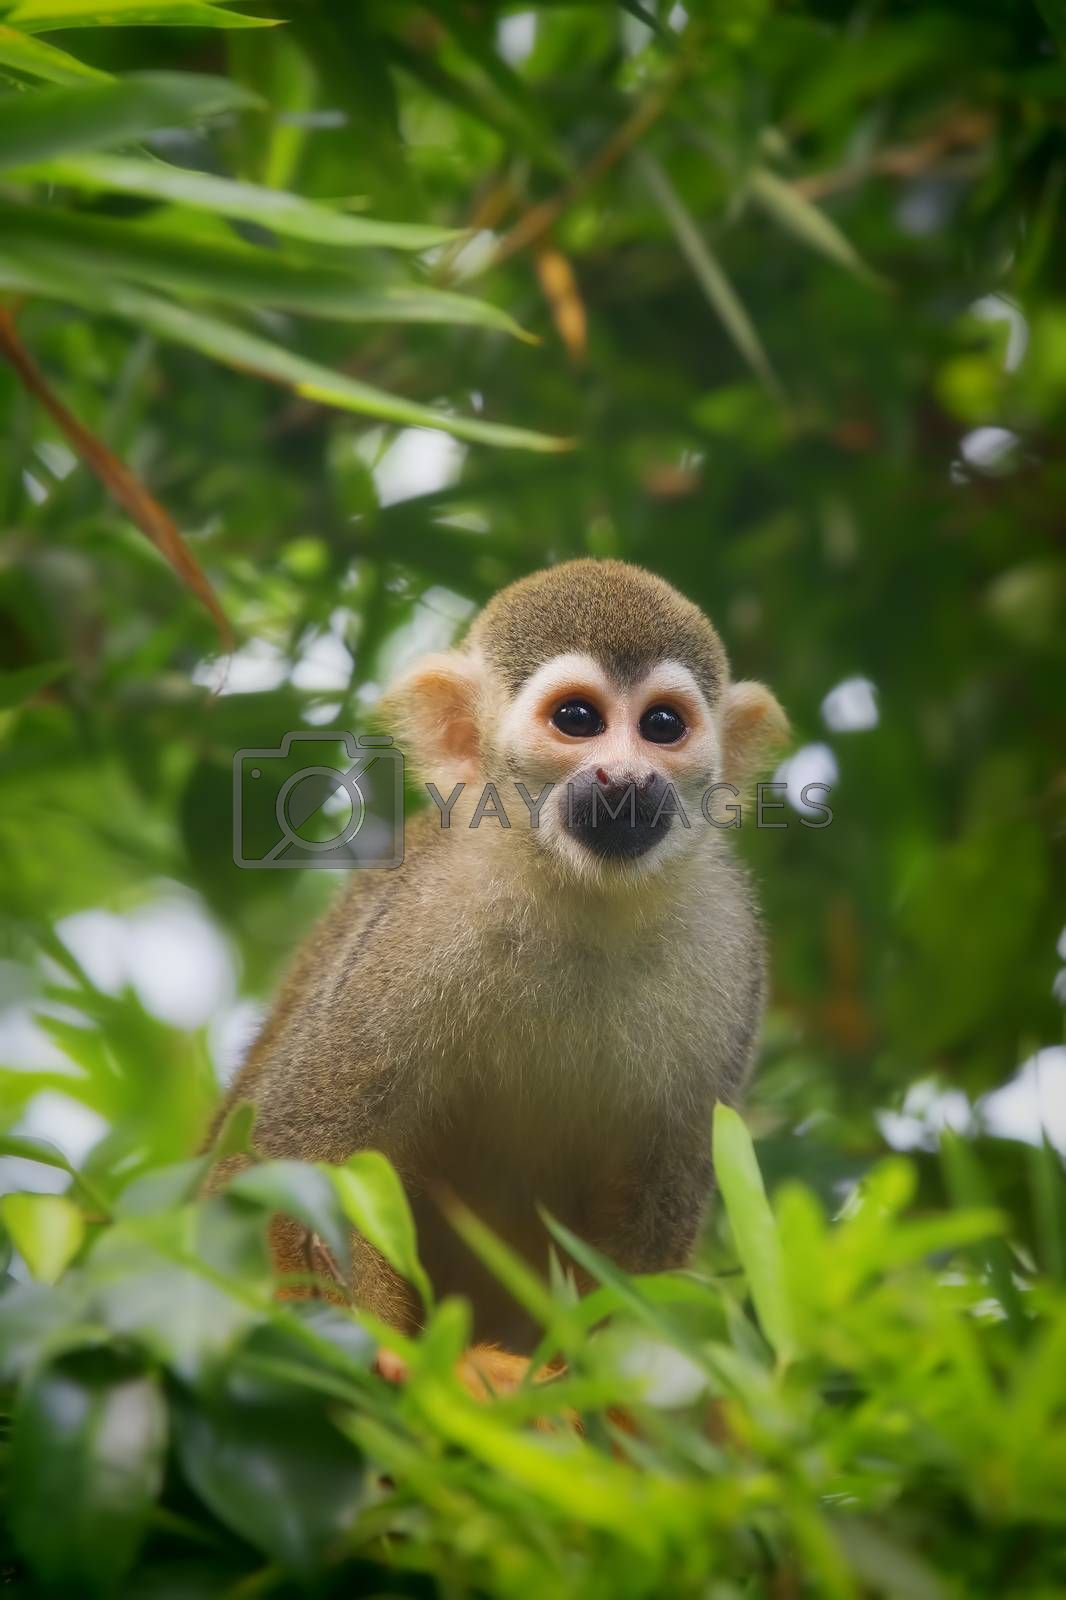 Squirrel Monkey by kjorgen